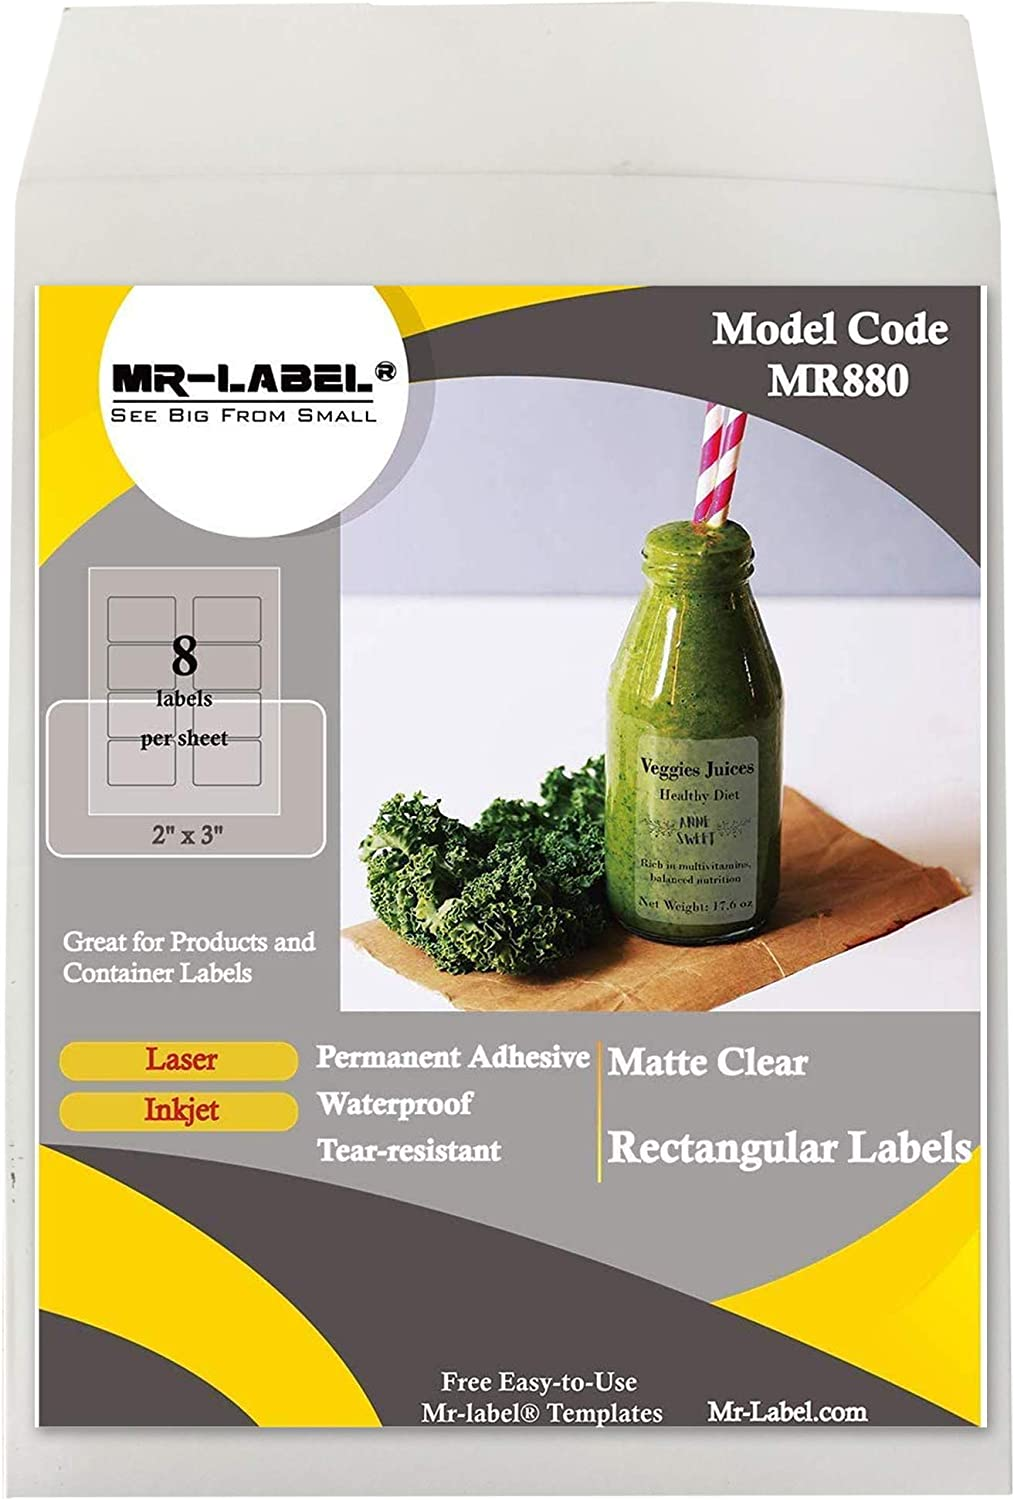 """Mr-Label 2"""" x 3"""" Matte Frosted Clear Rectangle Labels - Waterproof and Tear-Resistant - for Inkjet & Laser Printer - Permanent Adhesive - for Glass Bottle   Gift Bag (25 Sheets Total 200 Labels)"""